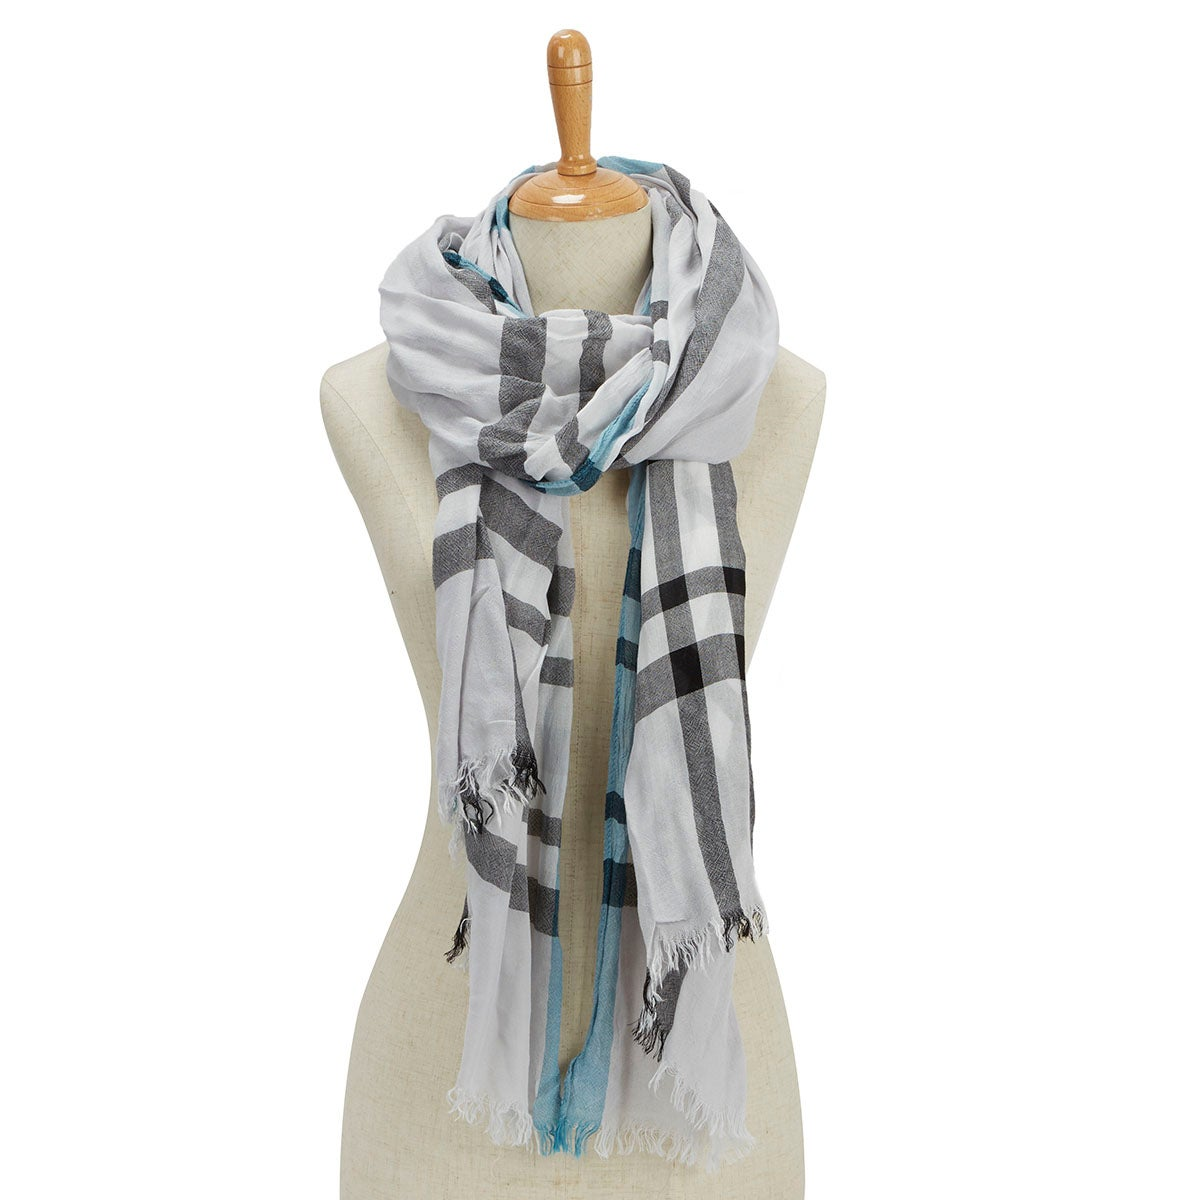 Foulard ESSENTIALS FRAAS PLAID, gris pâle, femmes